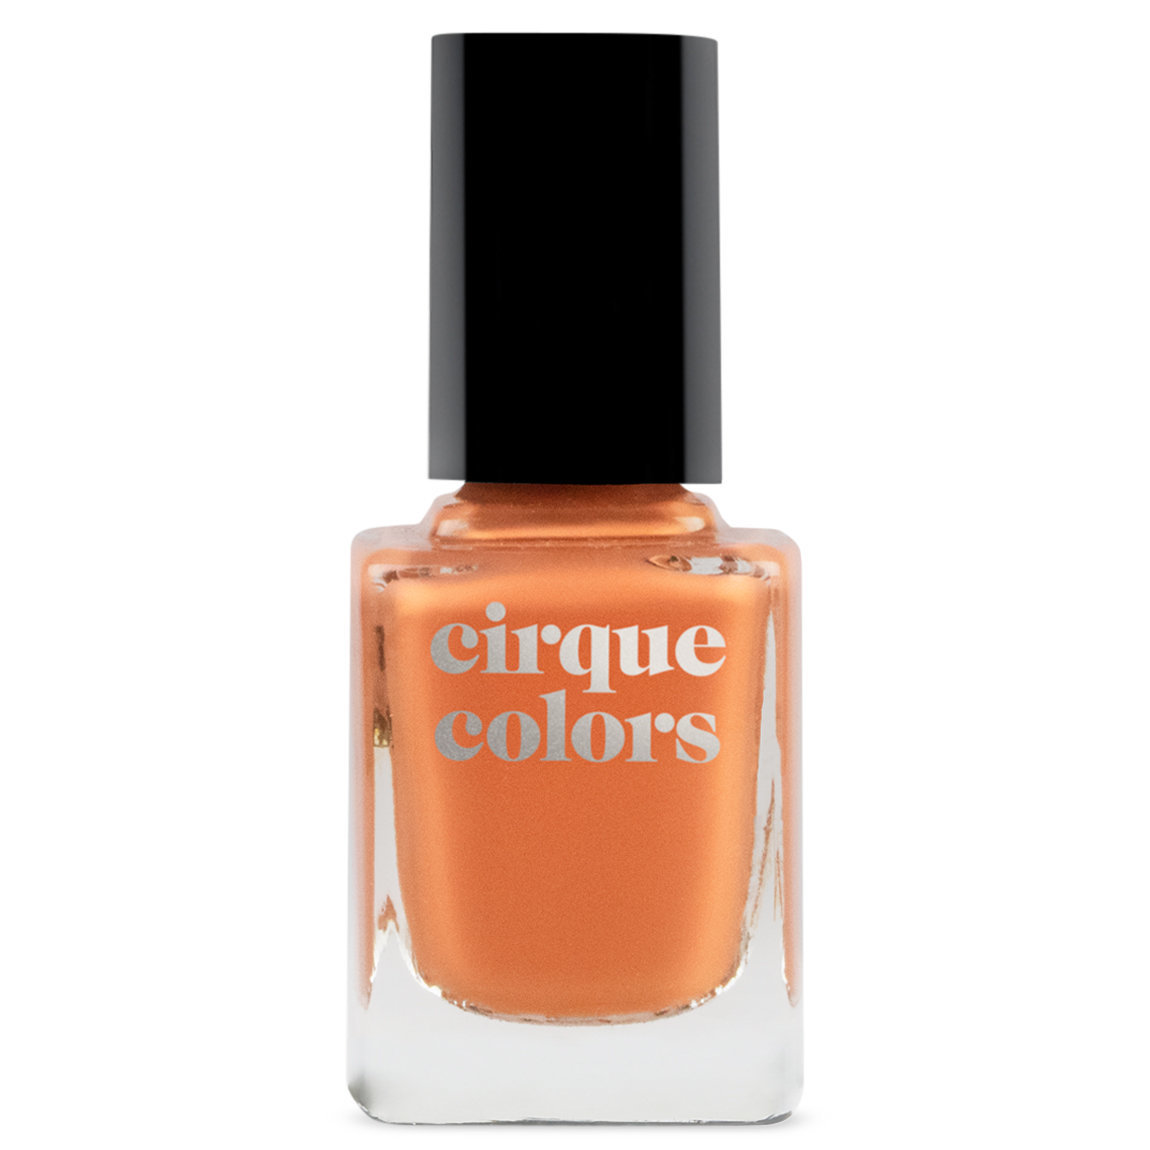 Cirque Colors Creme Nail Polish Arabesque alternative view 1 - product swatch.